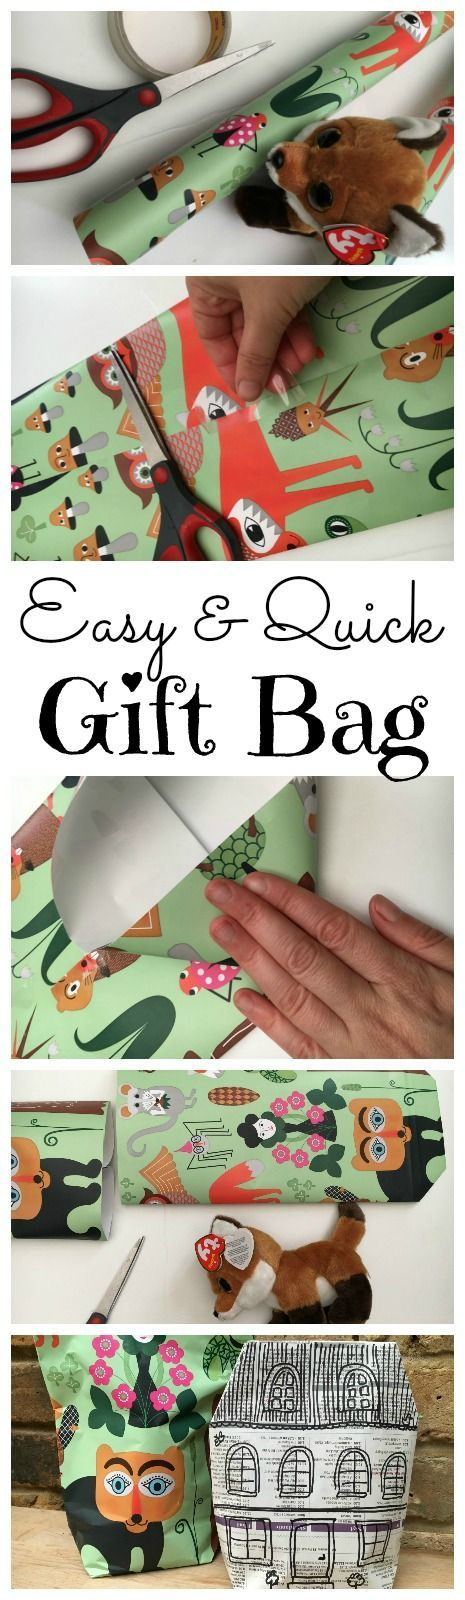 """Easy DIY Gift Bag - these gift bags are super quick and easy to make and great for """"awkward shaped gifts"""". Love that you can make them from Gift Wrap, Brown Paper and even Newspapers! A great newspaper diy upcycle for sure. And perfect for last minute gift wrapping!"""